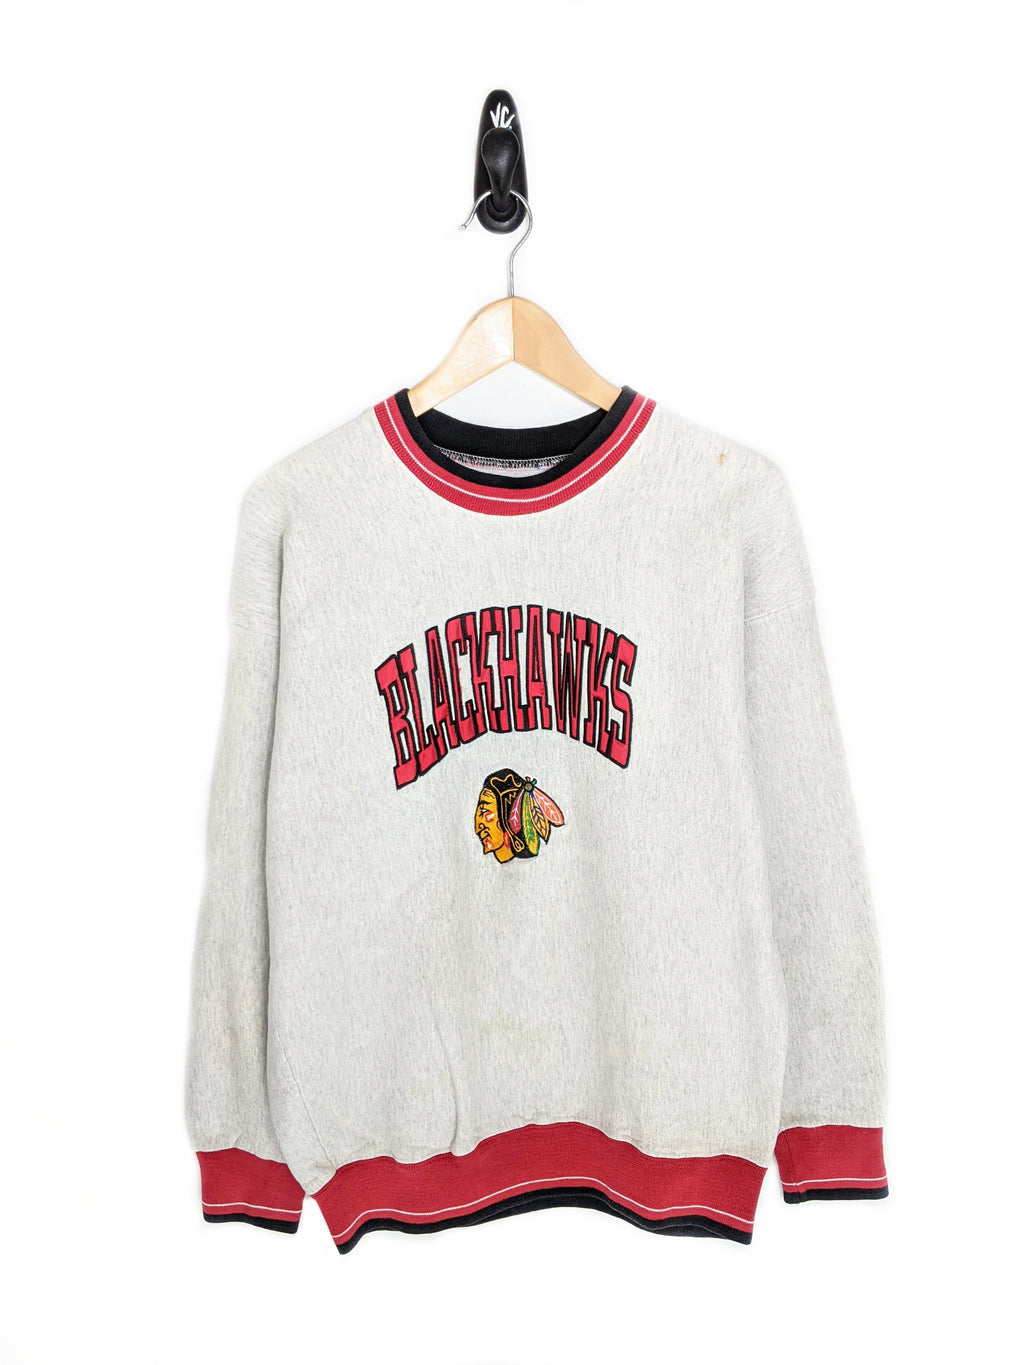 Blackhawks Ringer Sweatshirt (L)